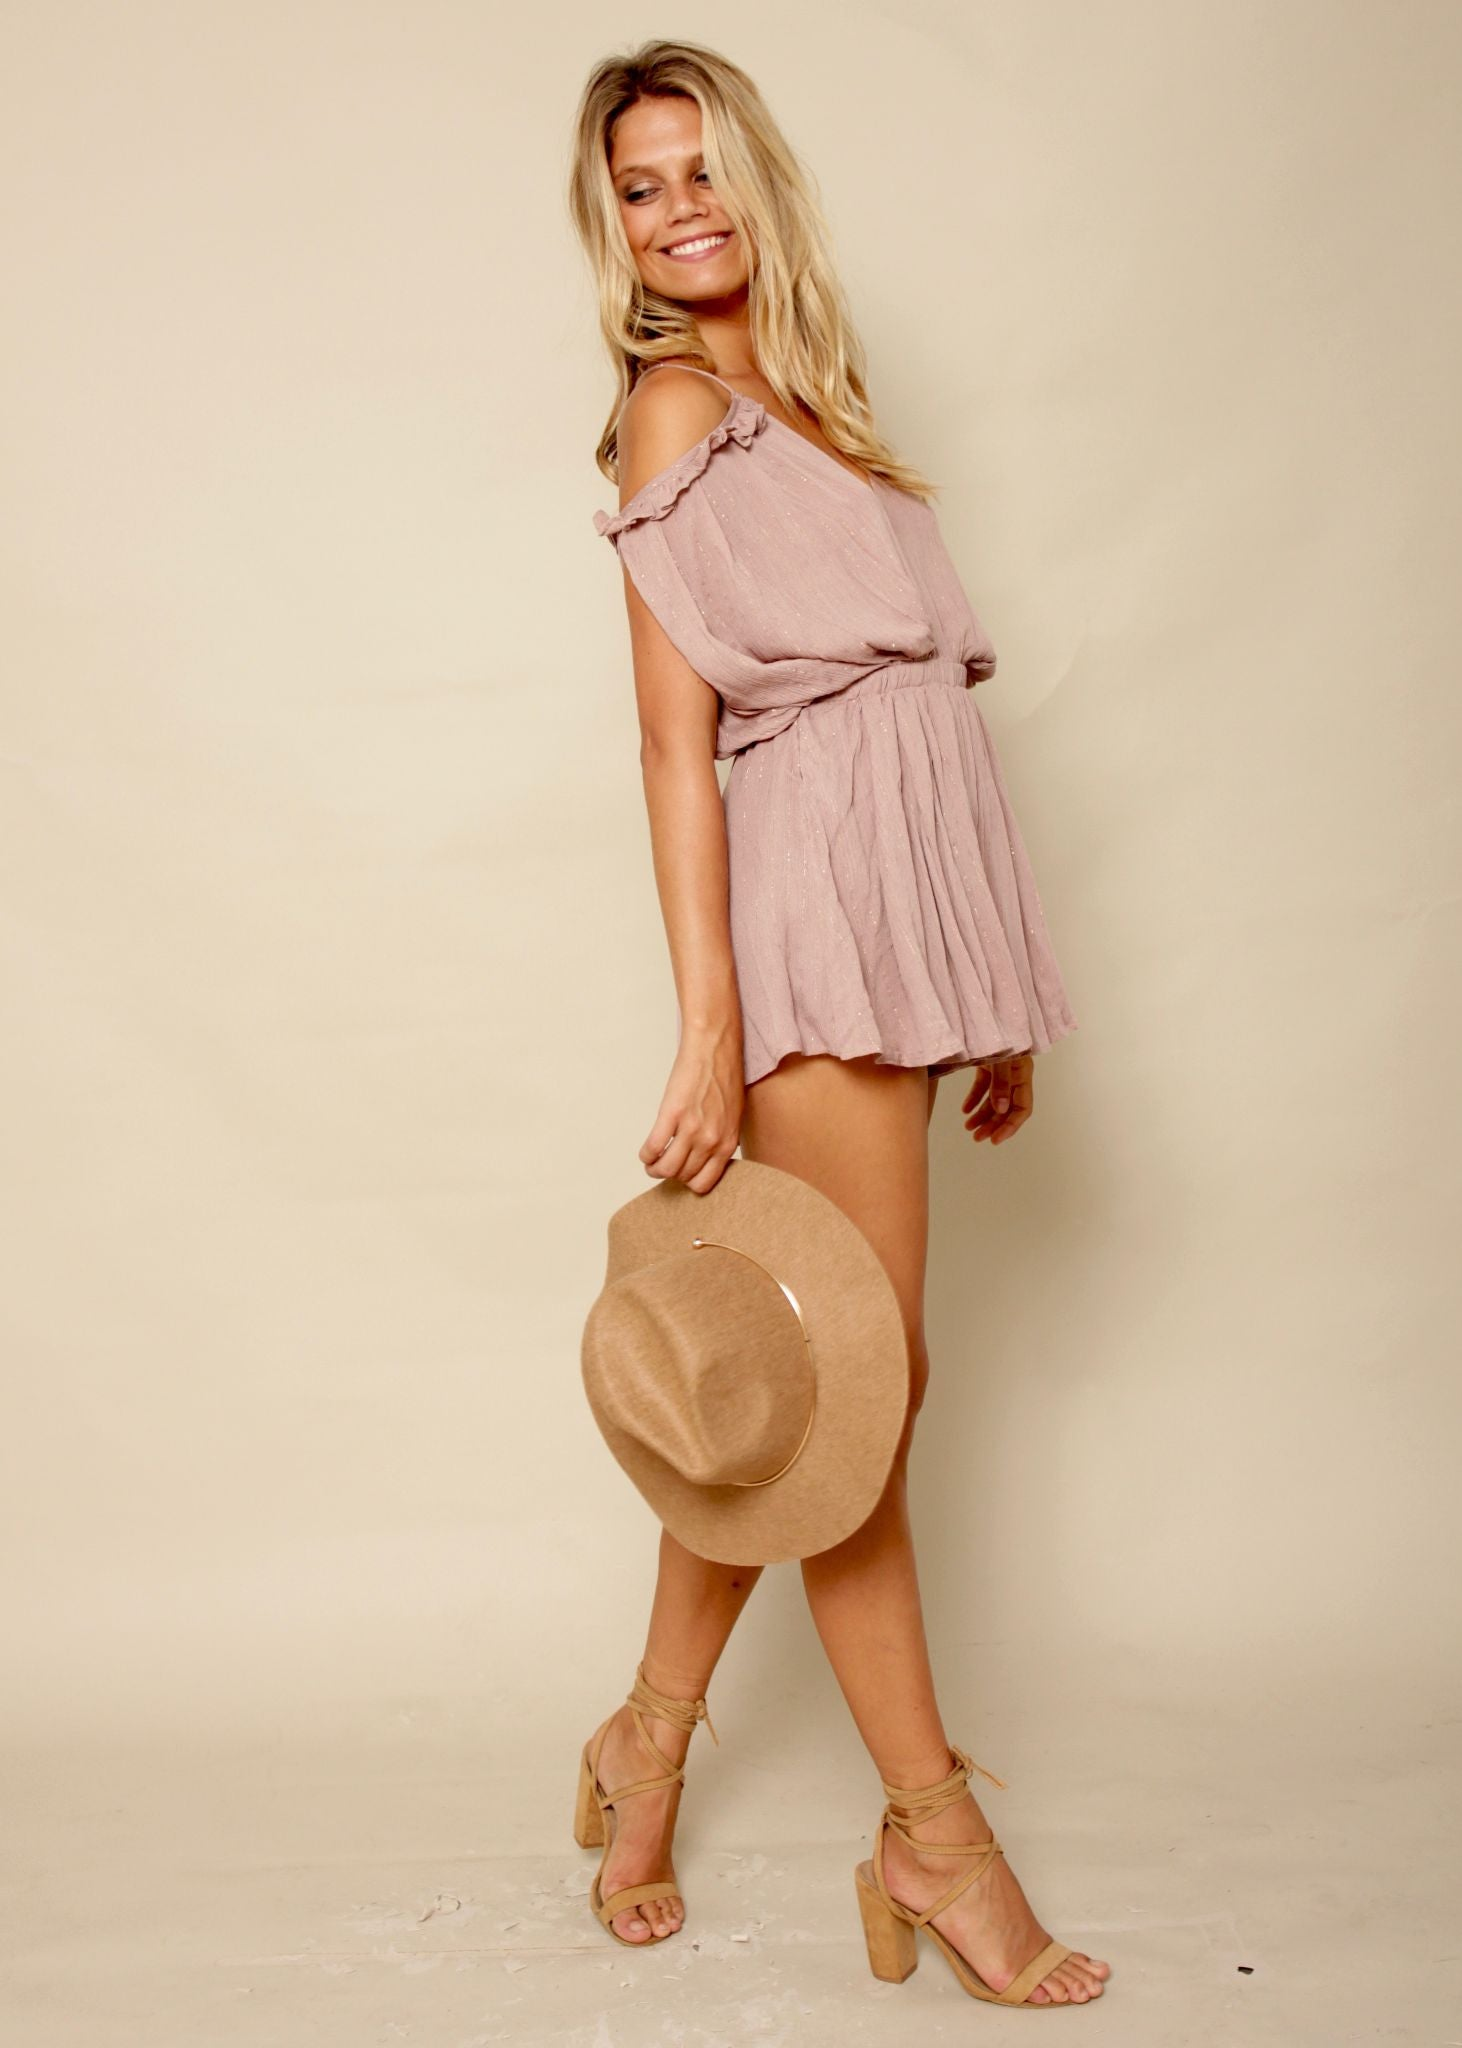 Tinker Lurex Playsuit - Mauve